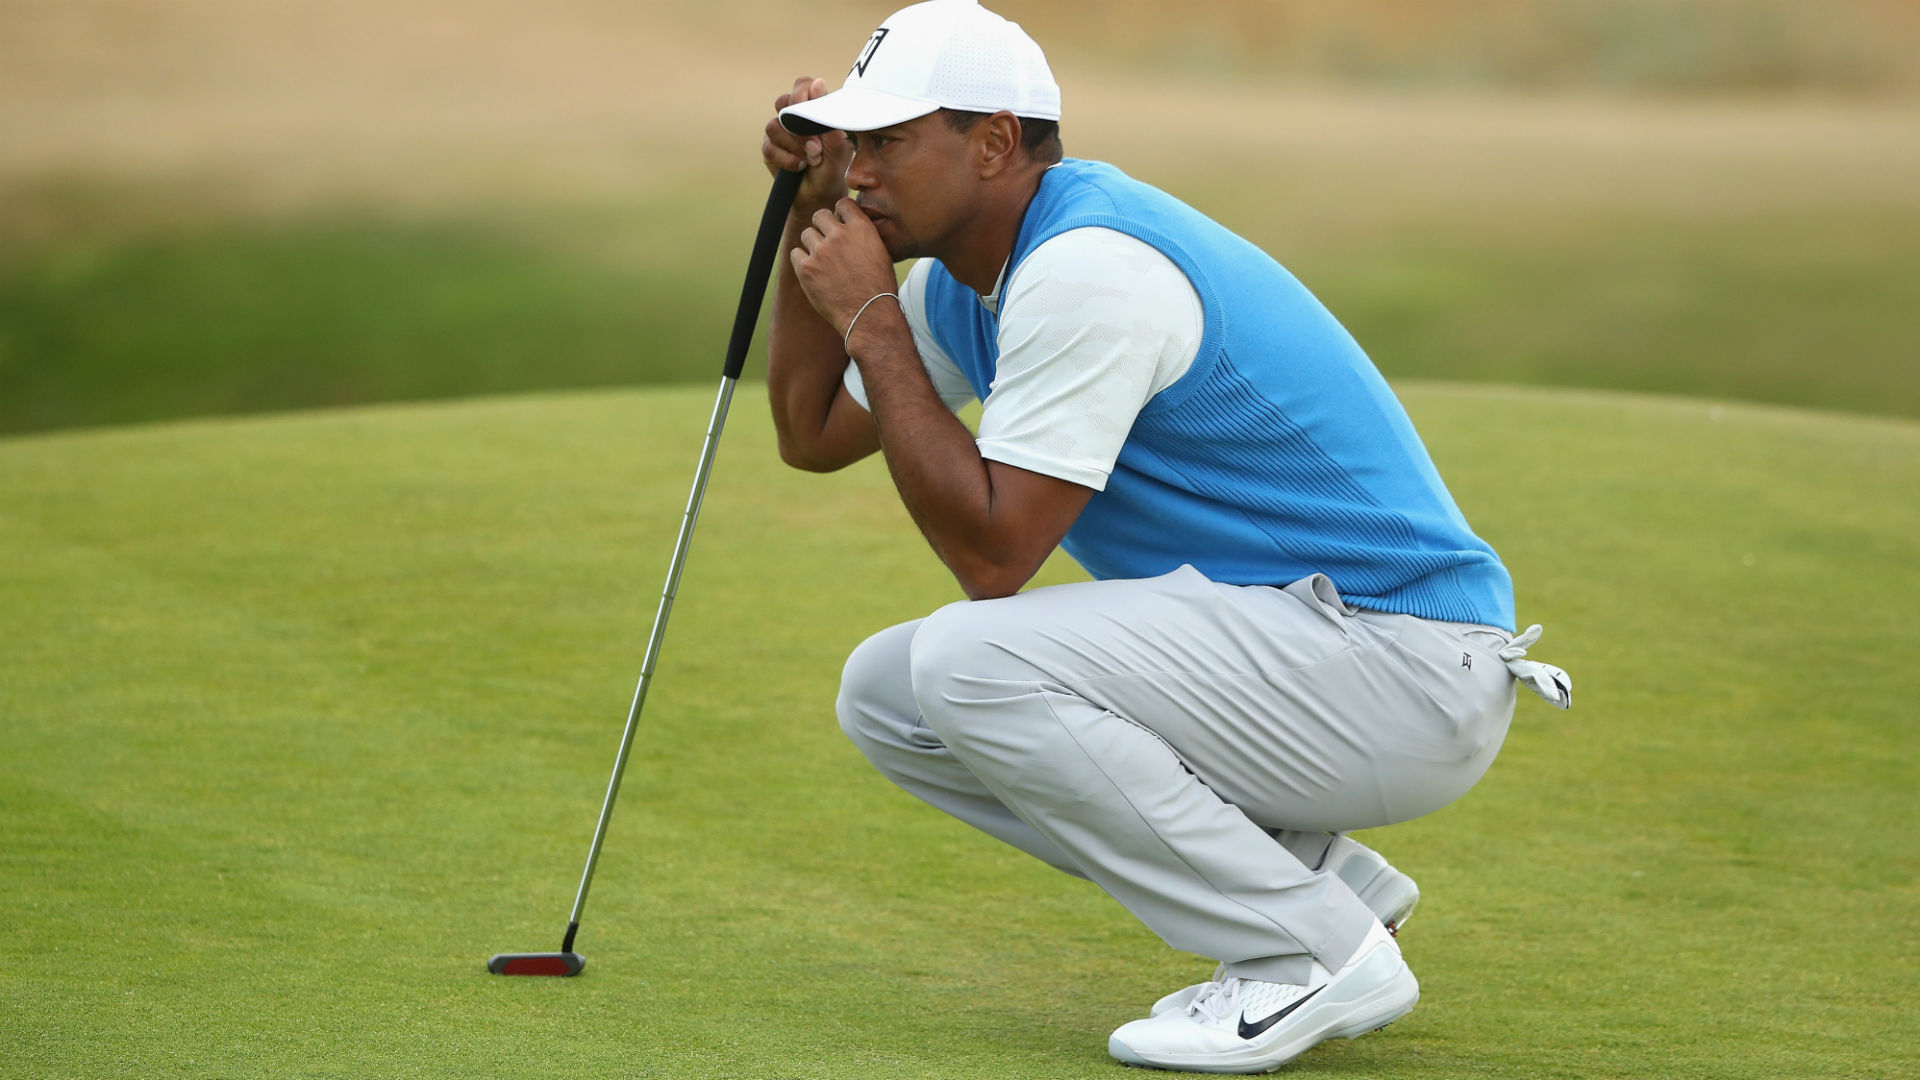 tiger woods score  round 1 recap  highlights from the